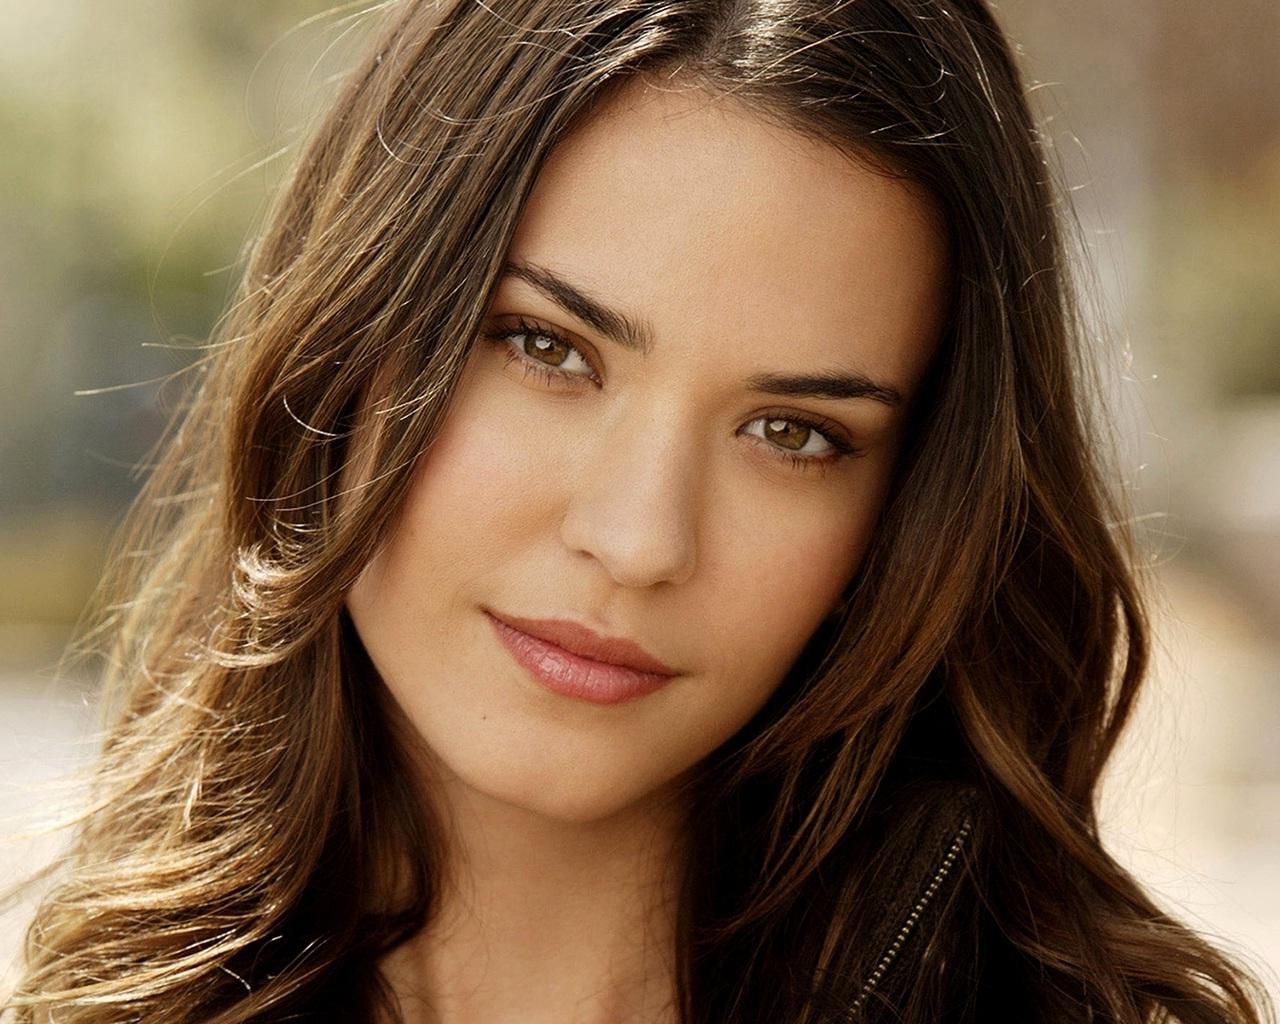 odette annable hot hd wallpapers free 1080p Odette